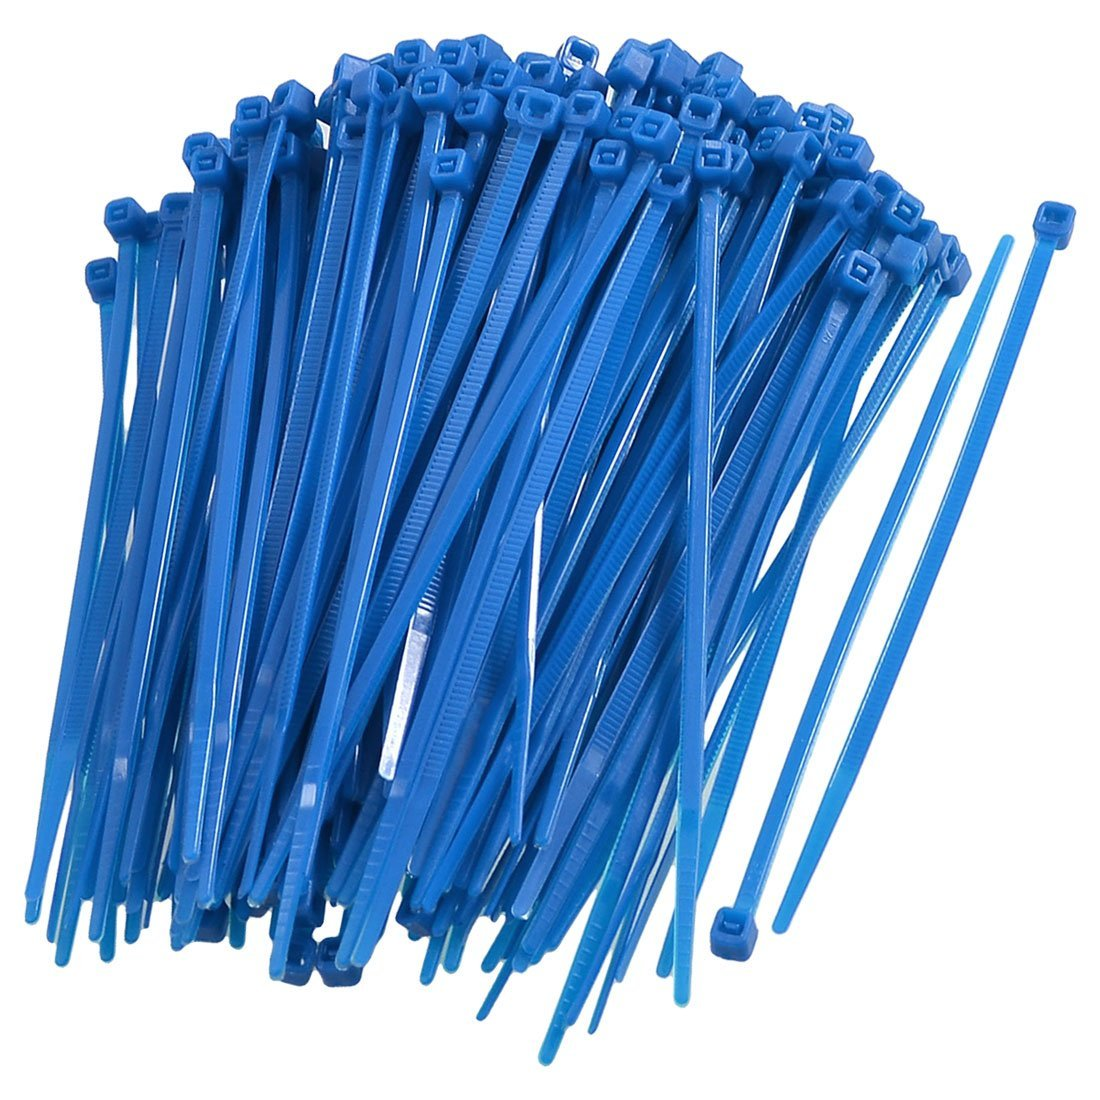 Uxcell Nylon Adjustable Self locking Cable Ties 2.5 x 100 mm Blue 200 Piece